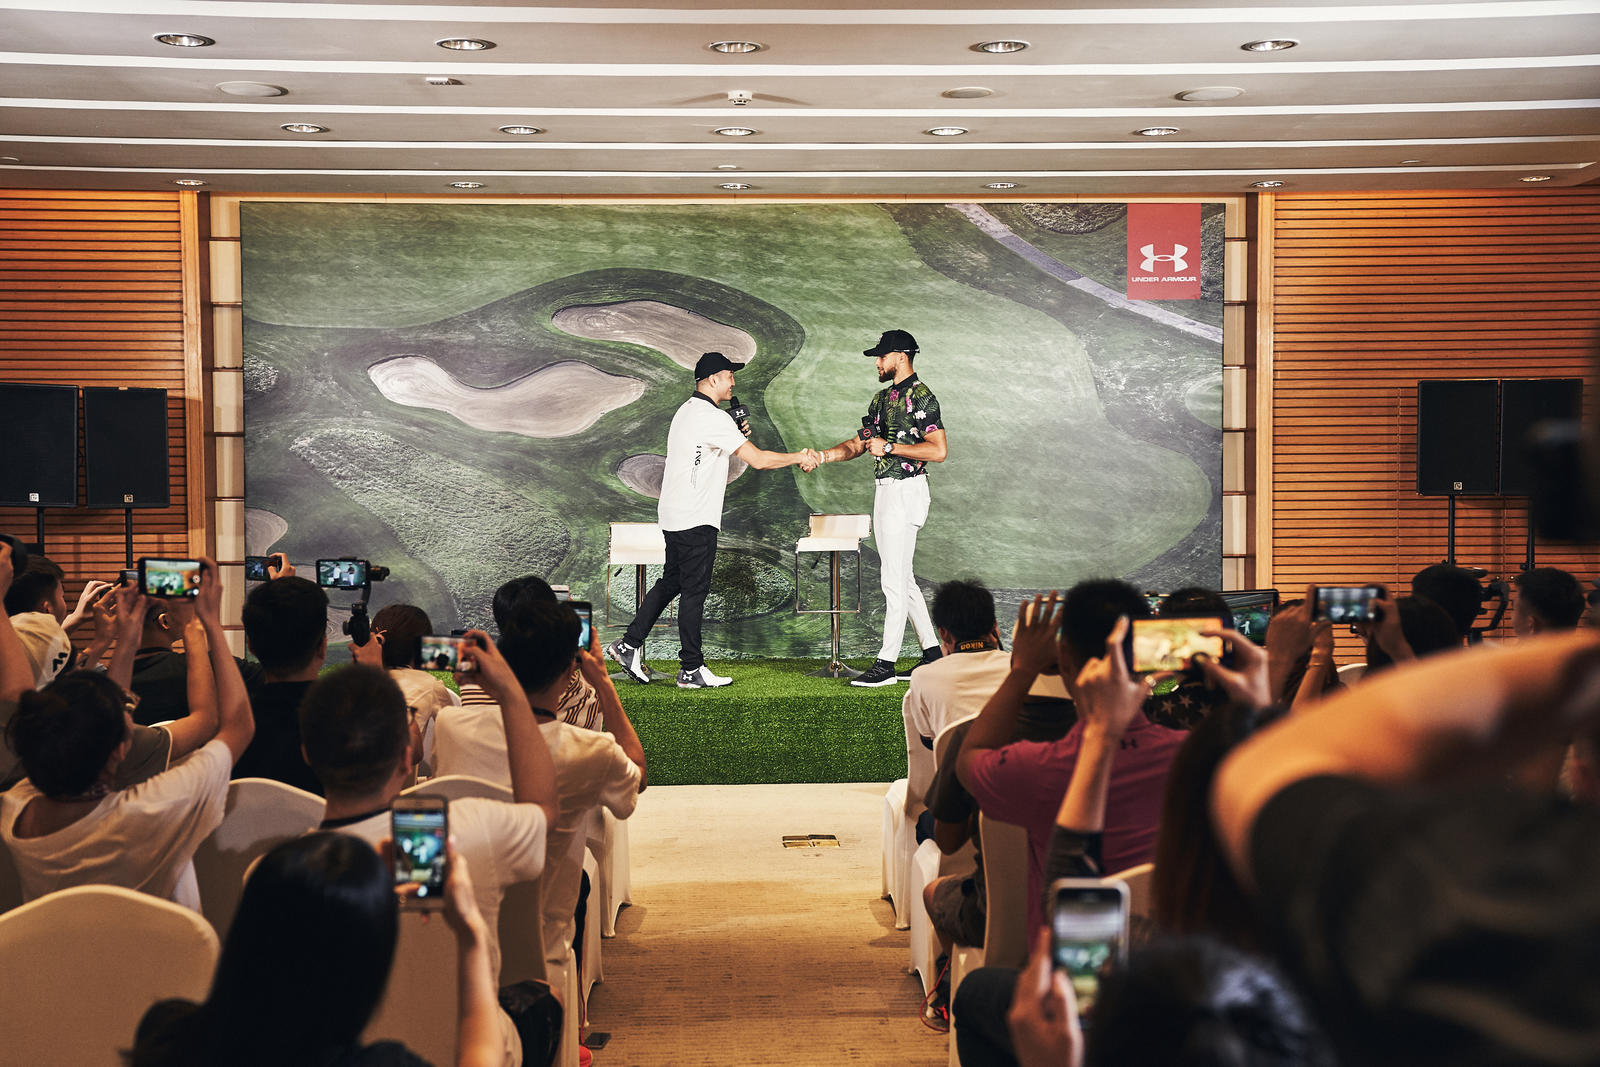 Stephen Curry debuts his Range Unlimited Golf line at the world's largest course, Mission Hills Resort in Shenzhen, China